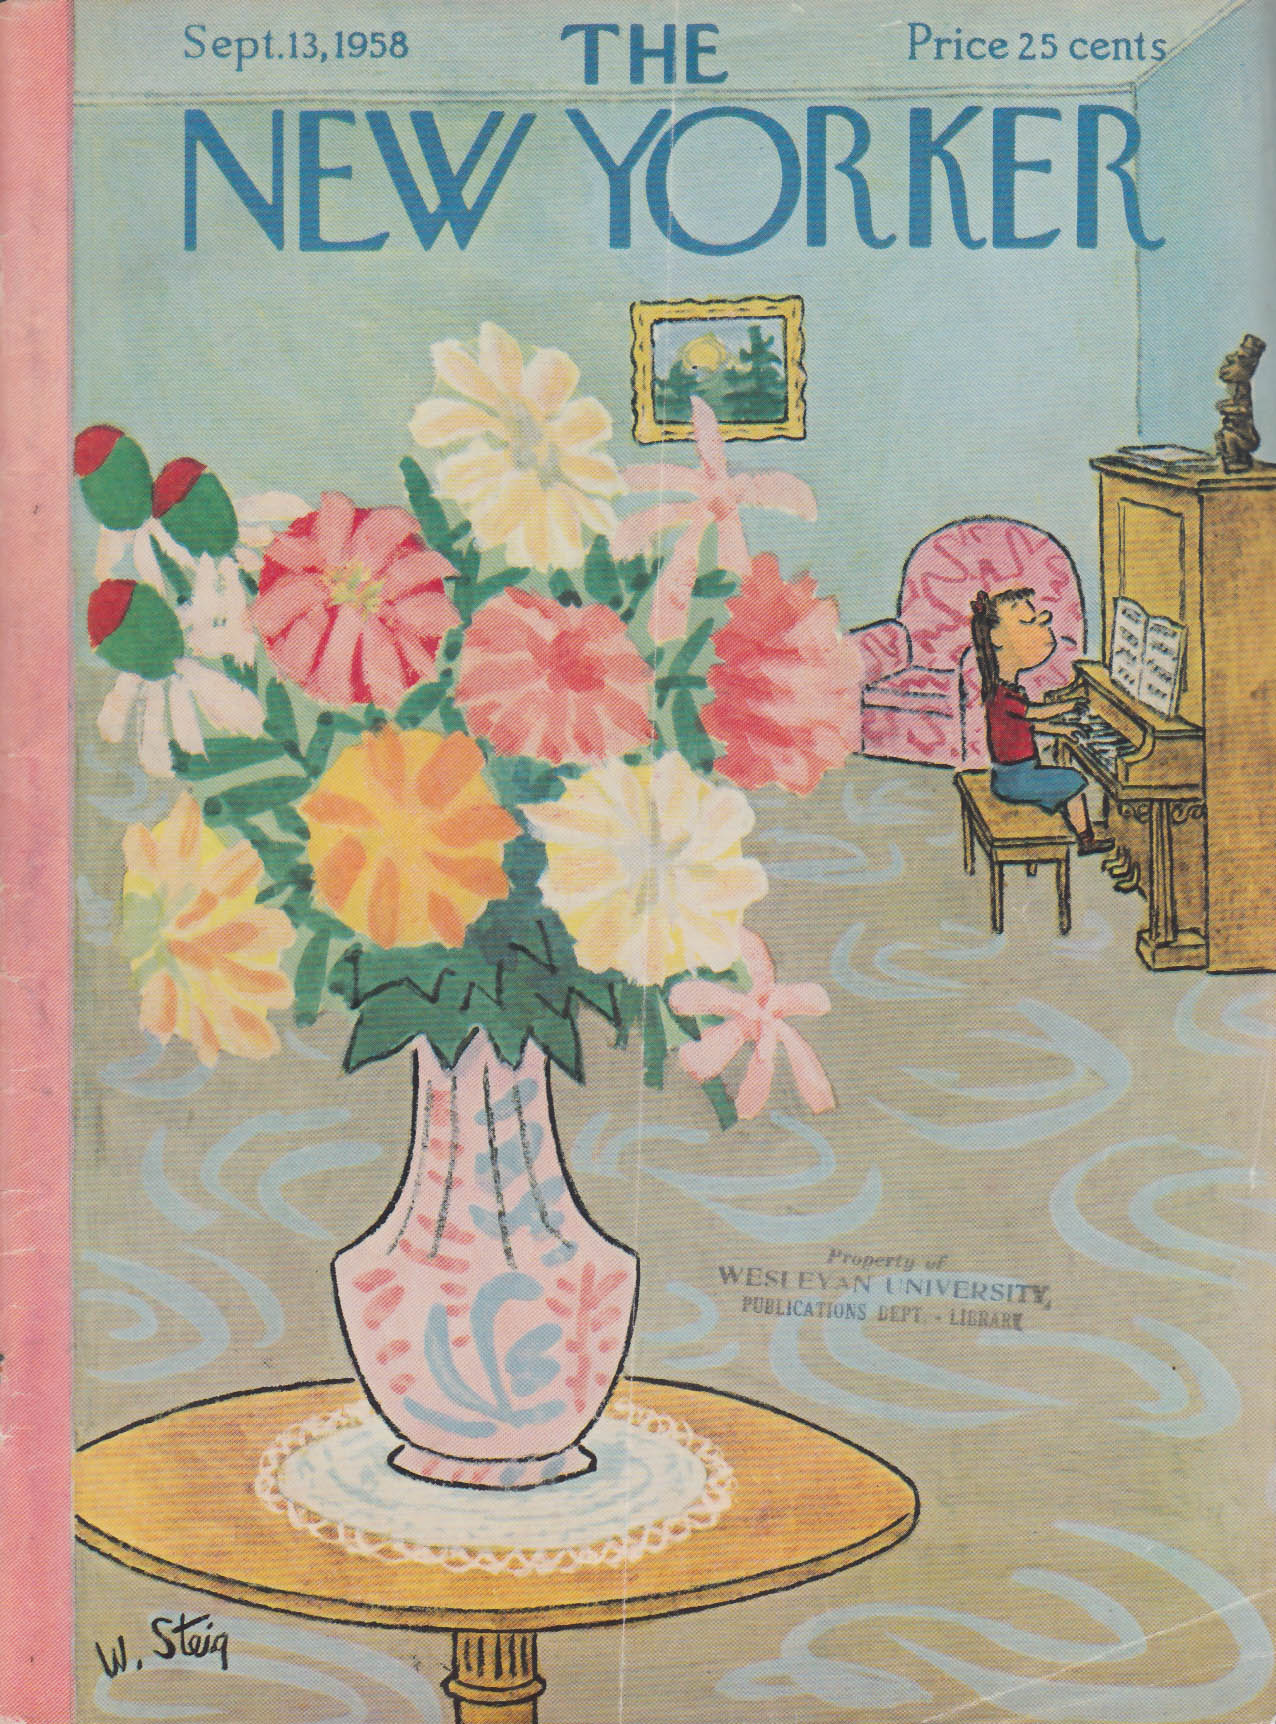 Image for New Yorker cover Steig girl at piano bouquet 9/13 1958